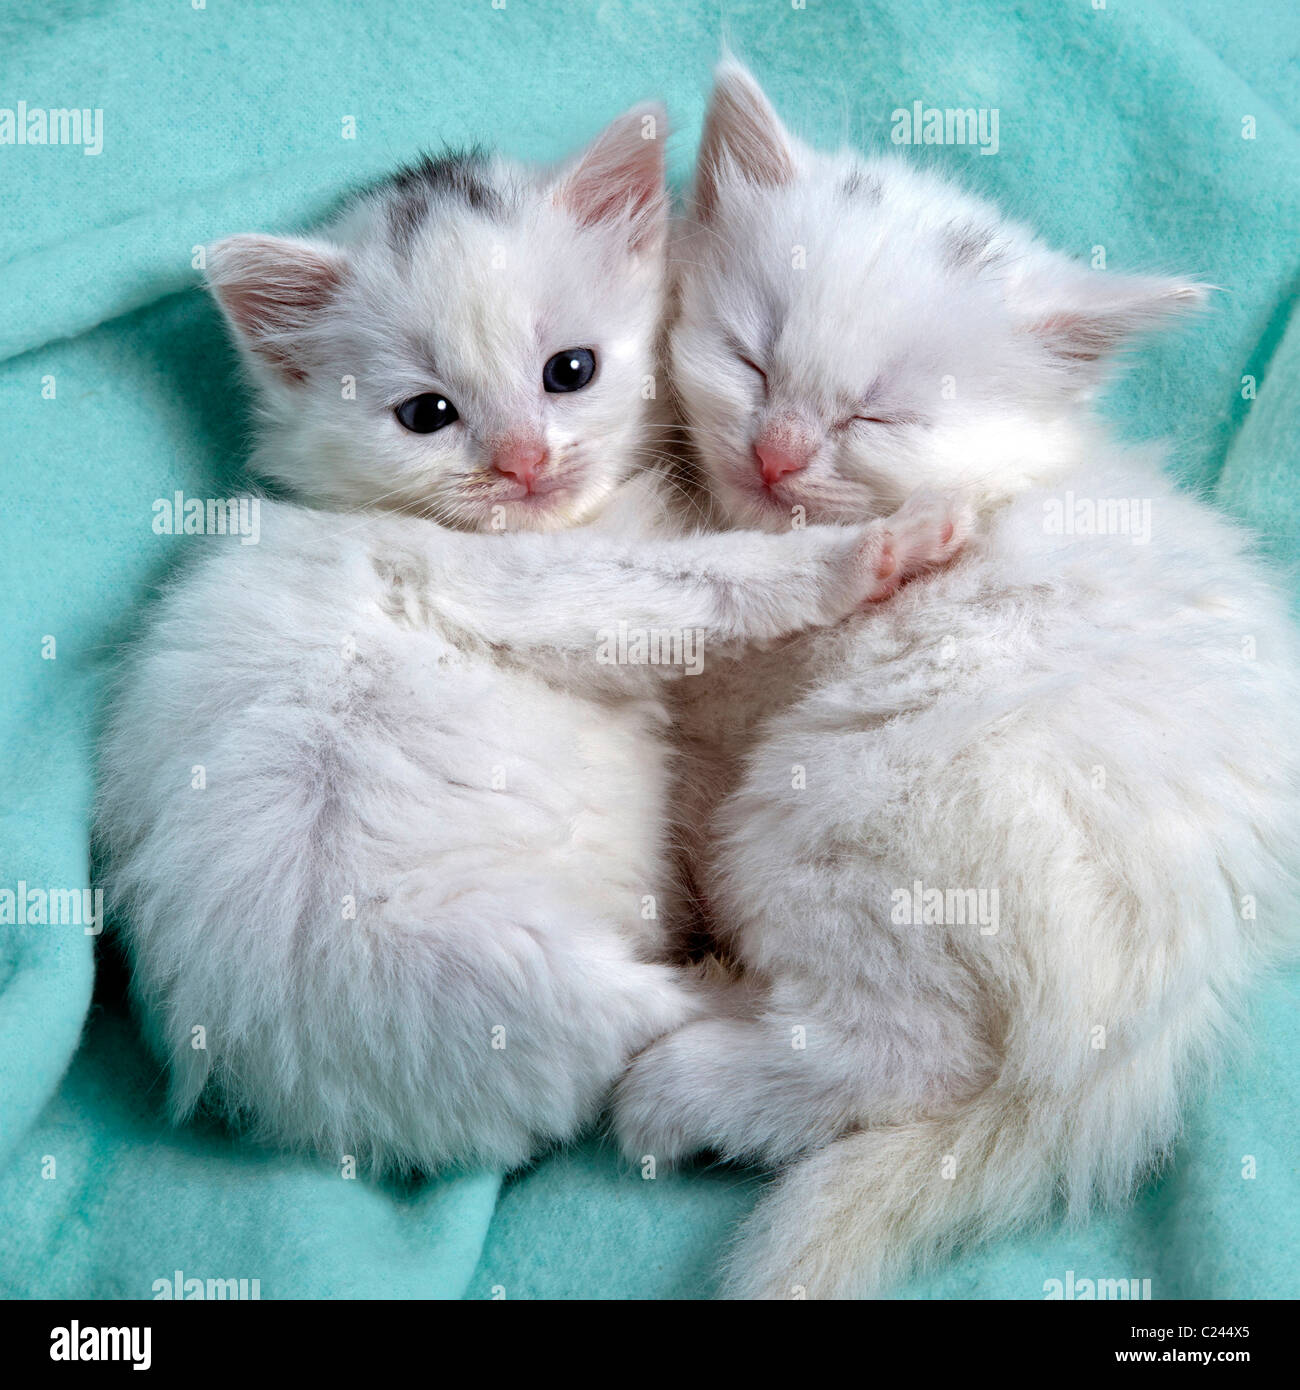 Cute White Kittens Sleeping Together Stock Photo Royalty